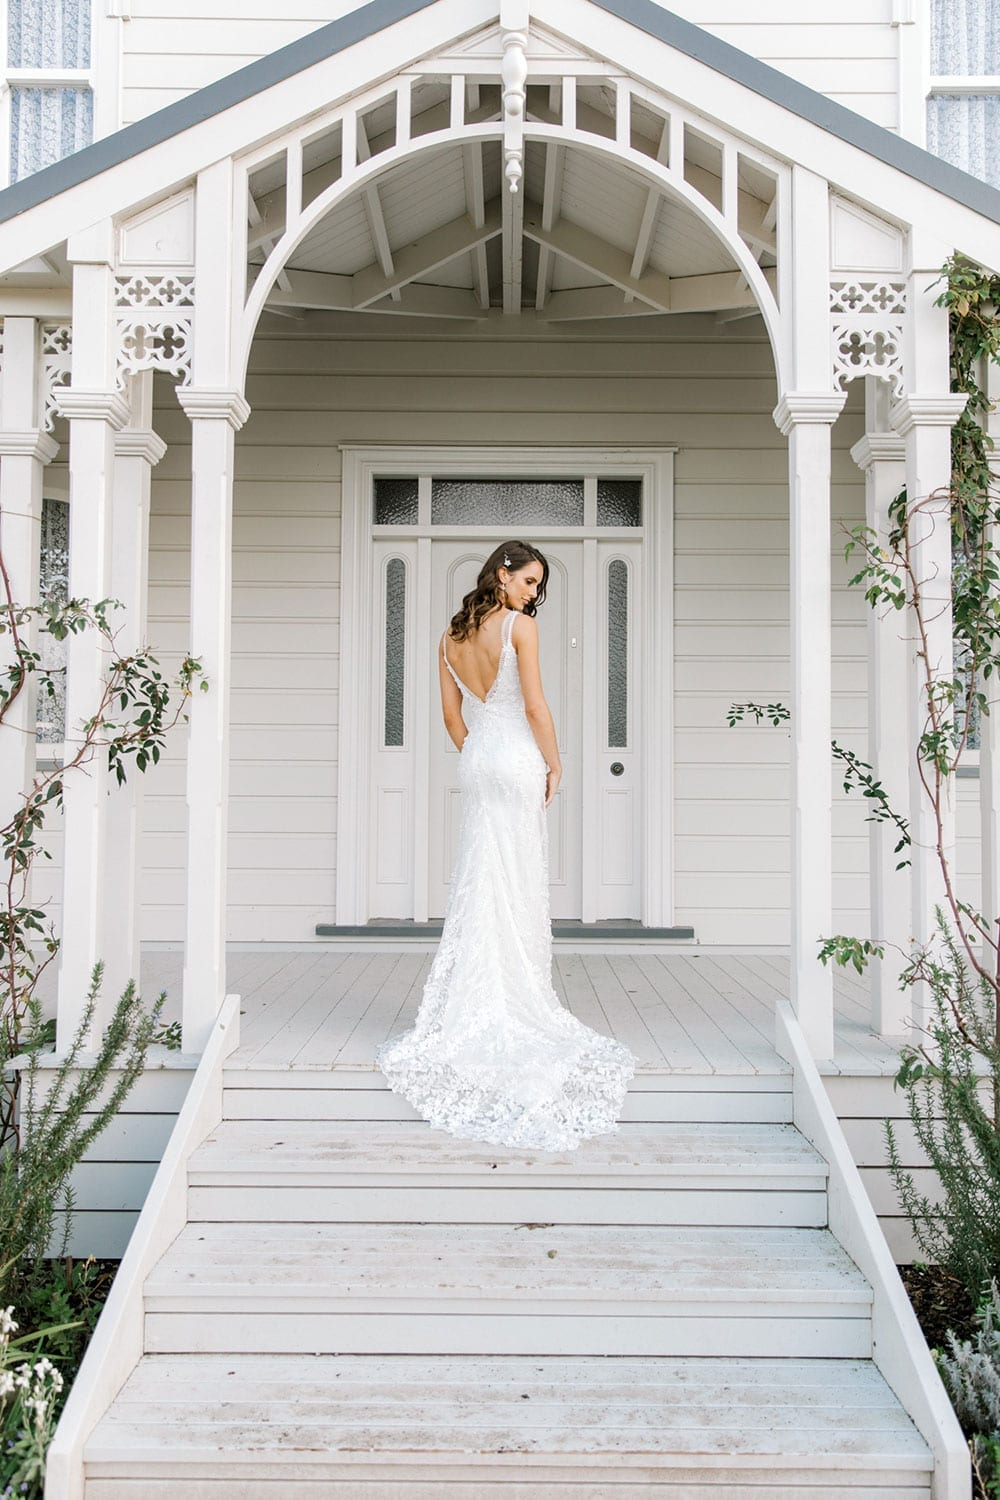 Model wearing Vinka Design Camille Wedding Dress, a Timeless Fitted Wedding Gown on the veranda of a wooden building with an arch facing away displaying train